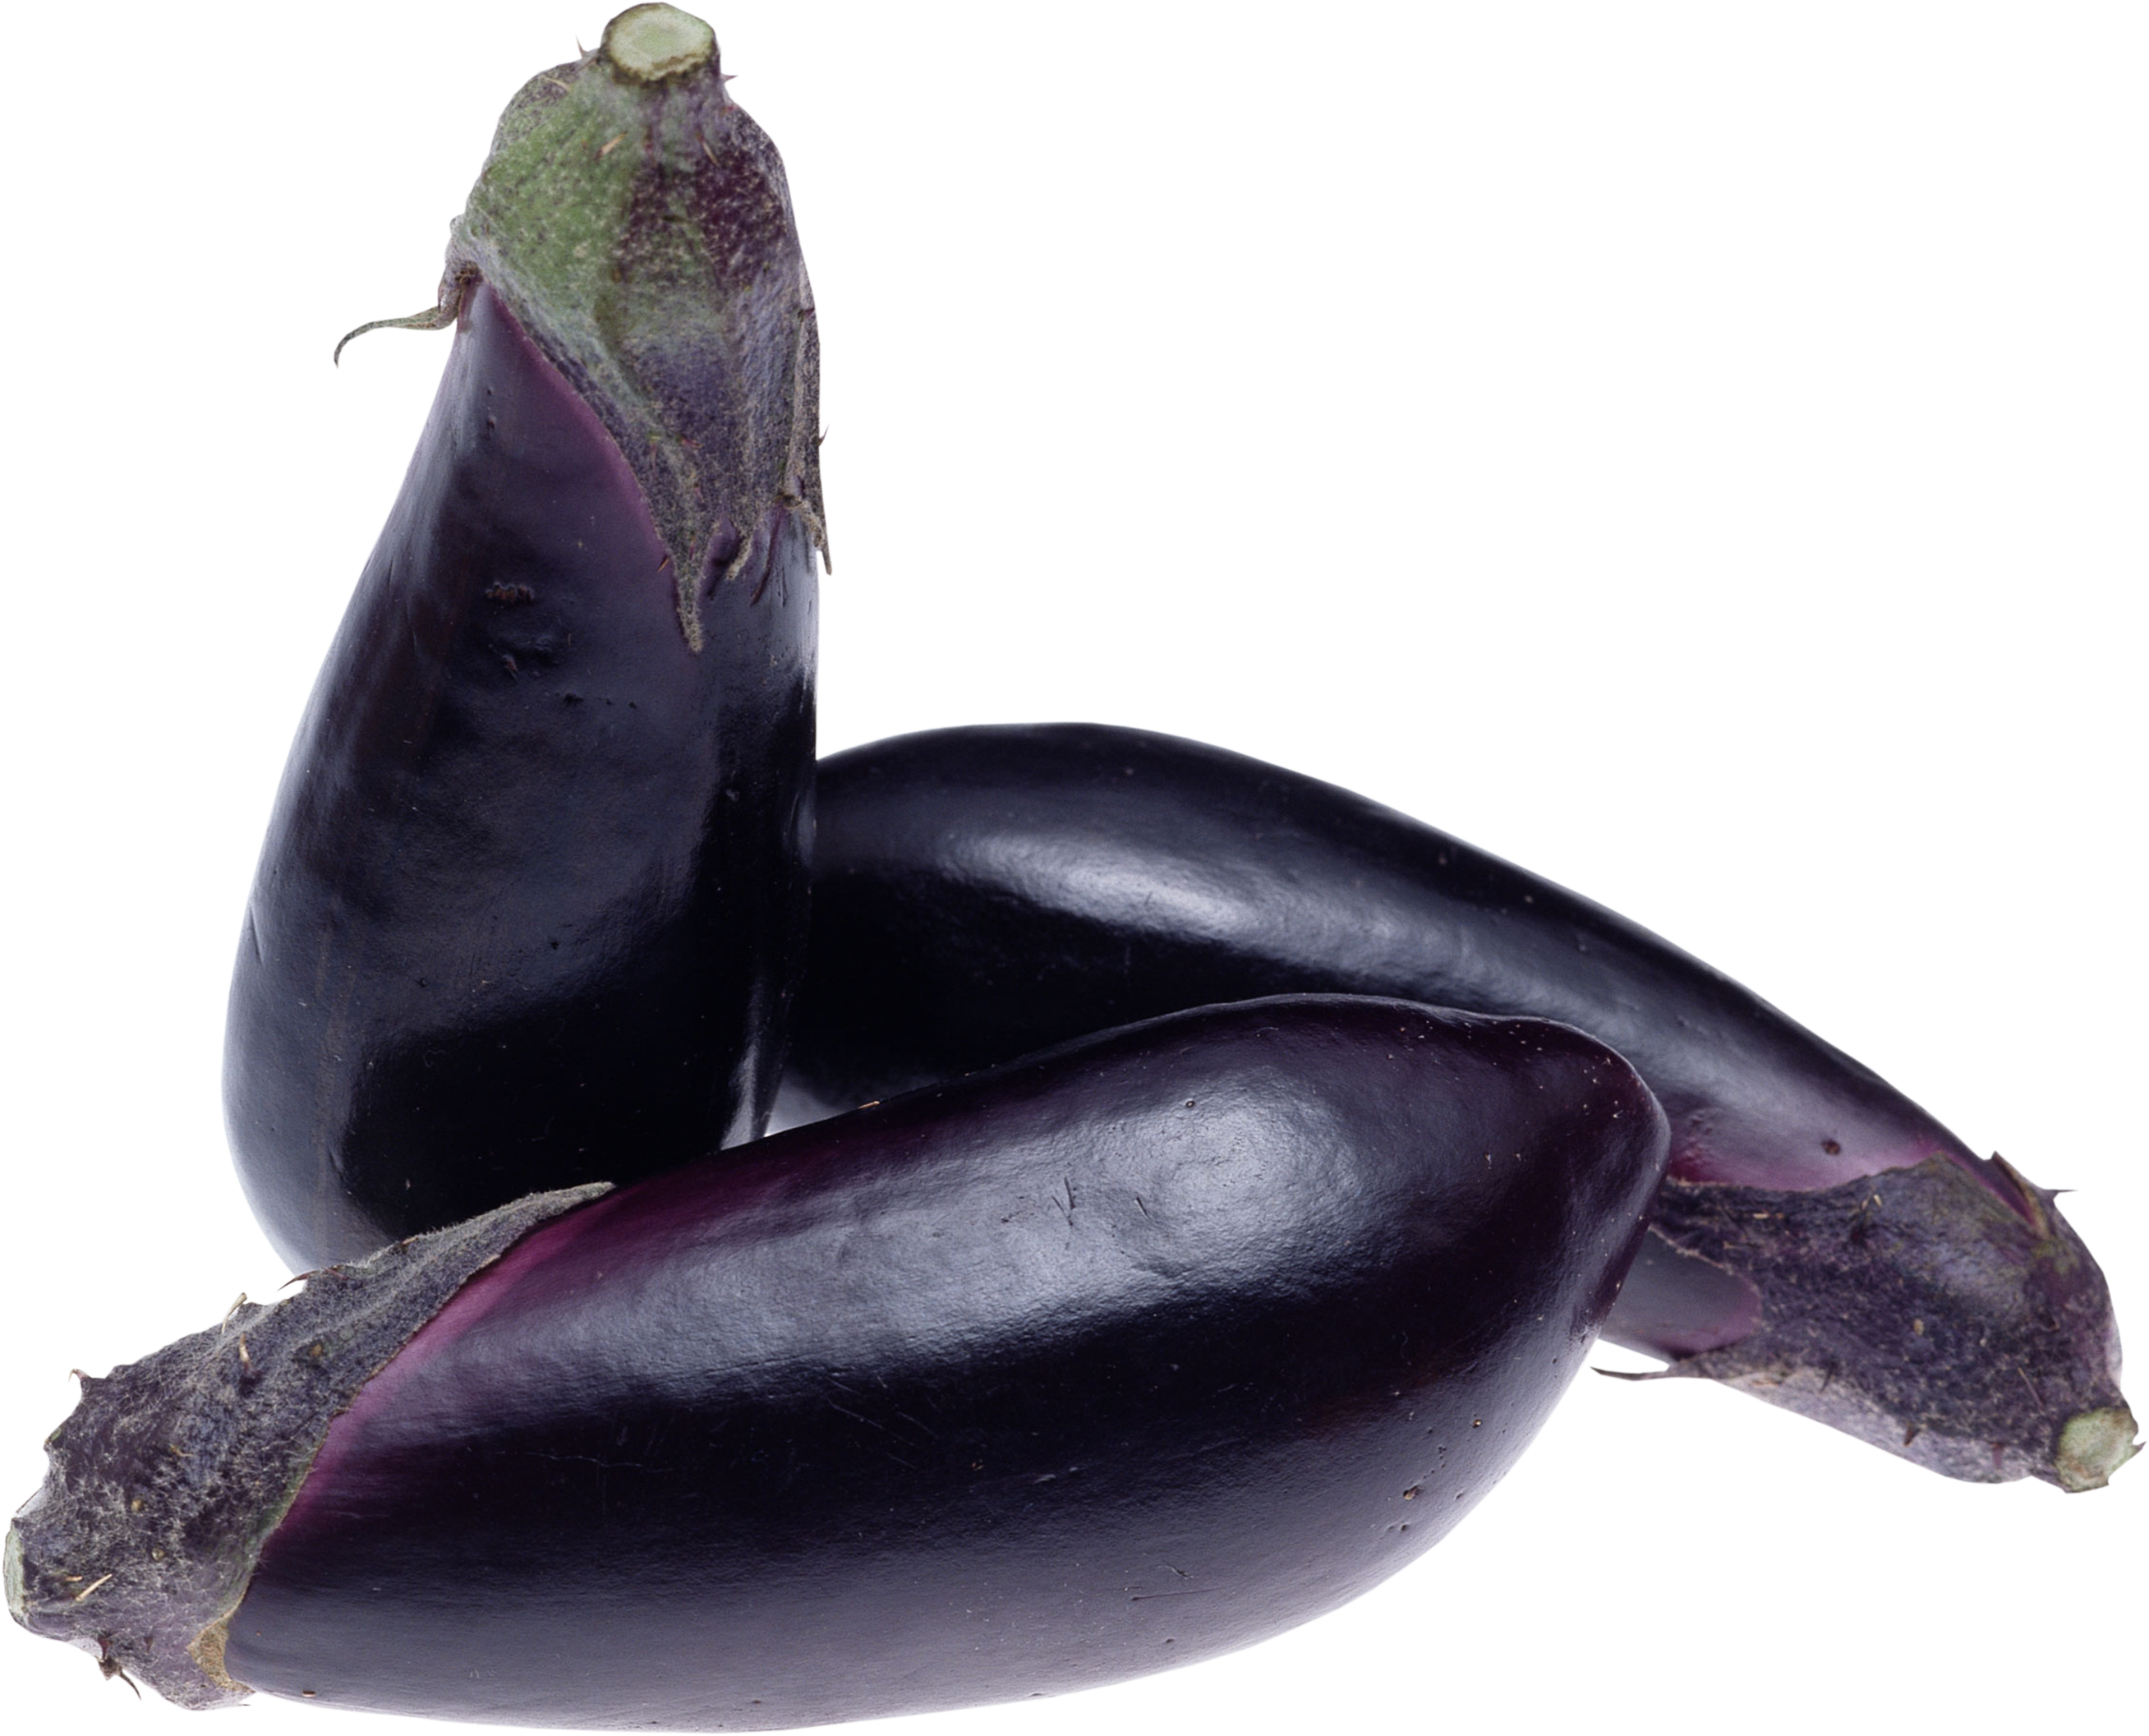 eggplant png image collection download crazypngm crazy png images download #29849